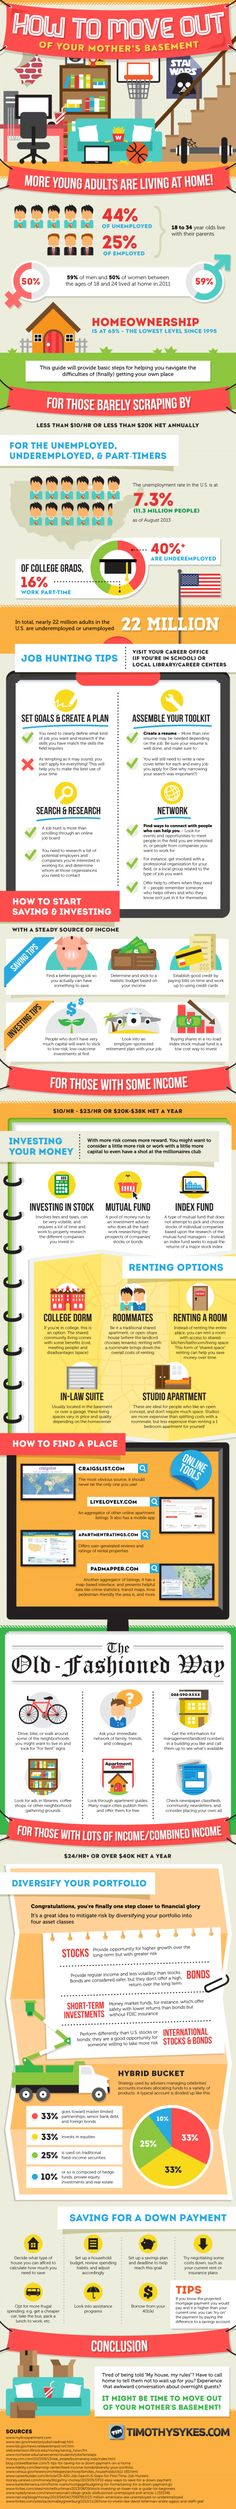 Tips for saving up for your own home (not just for people trying to move out of their parents' house)